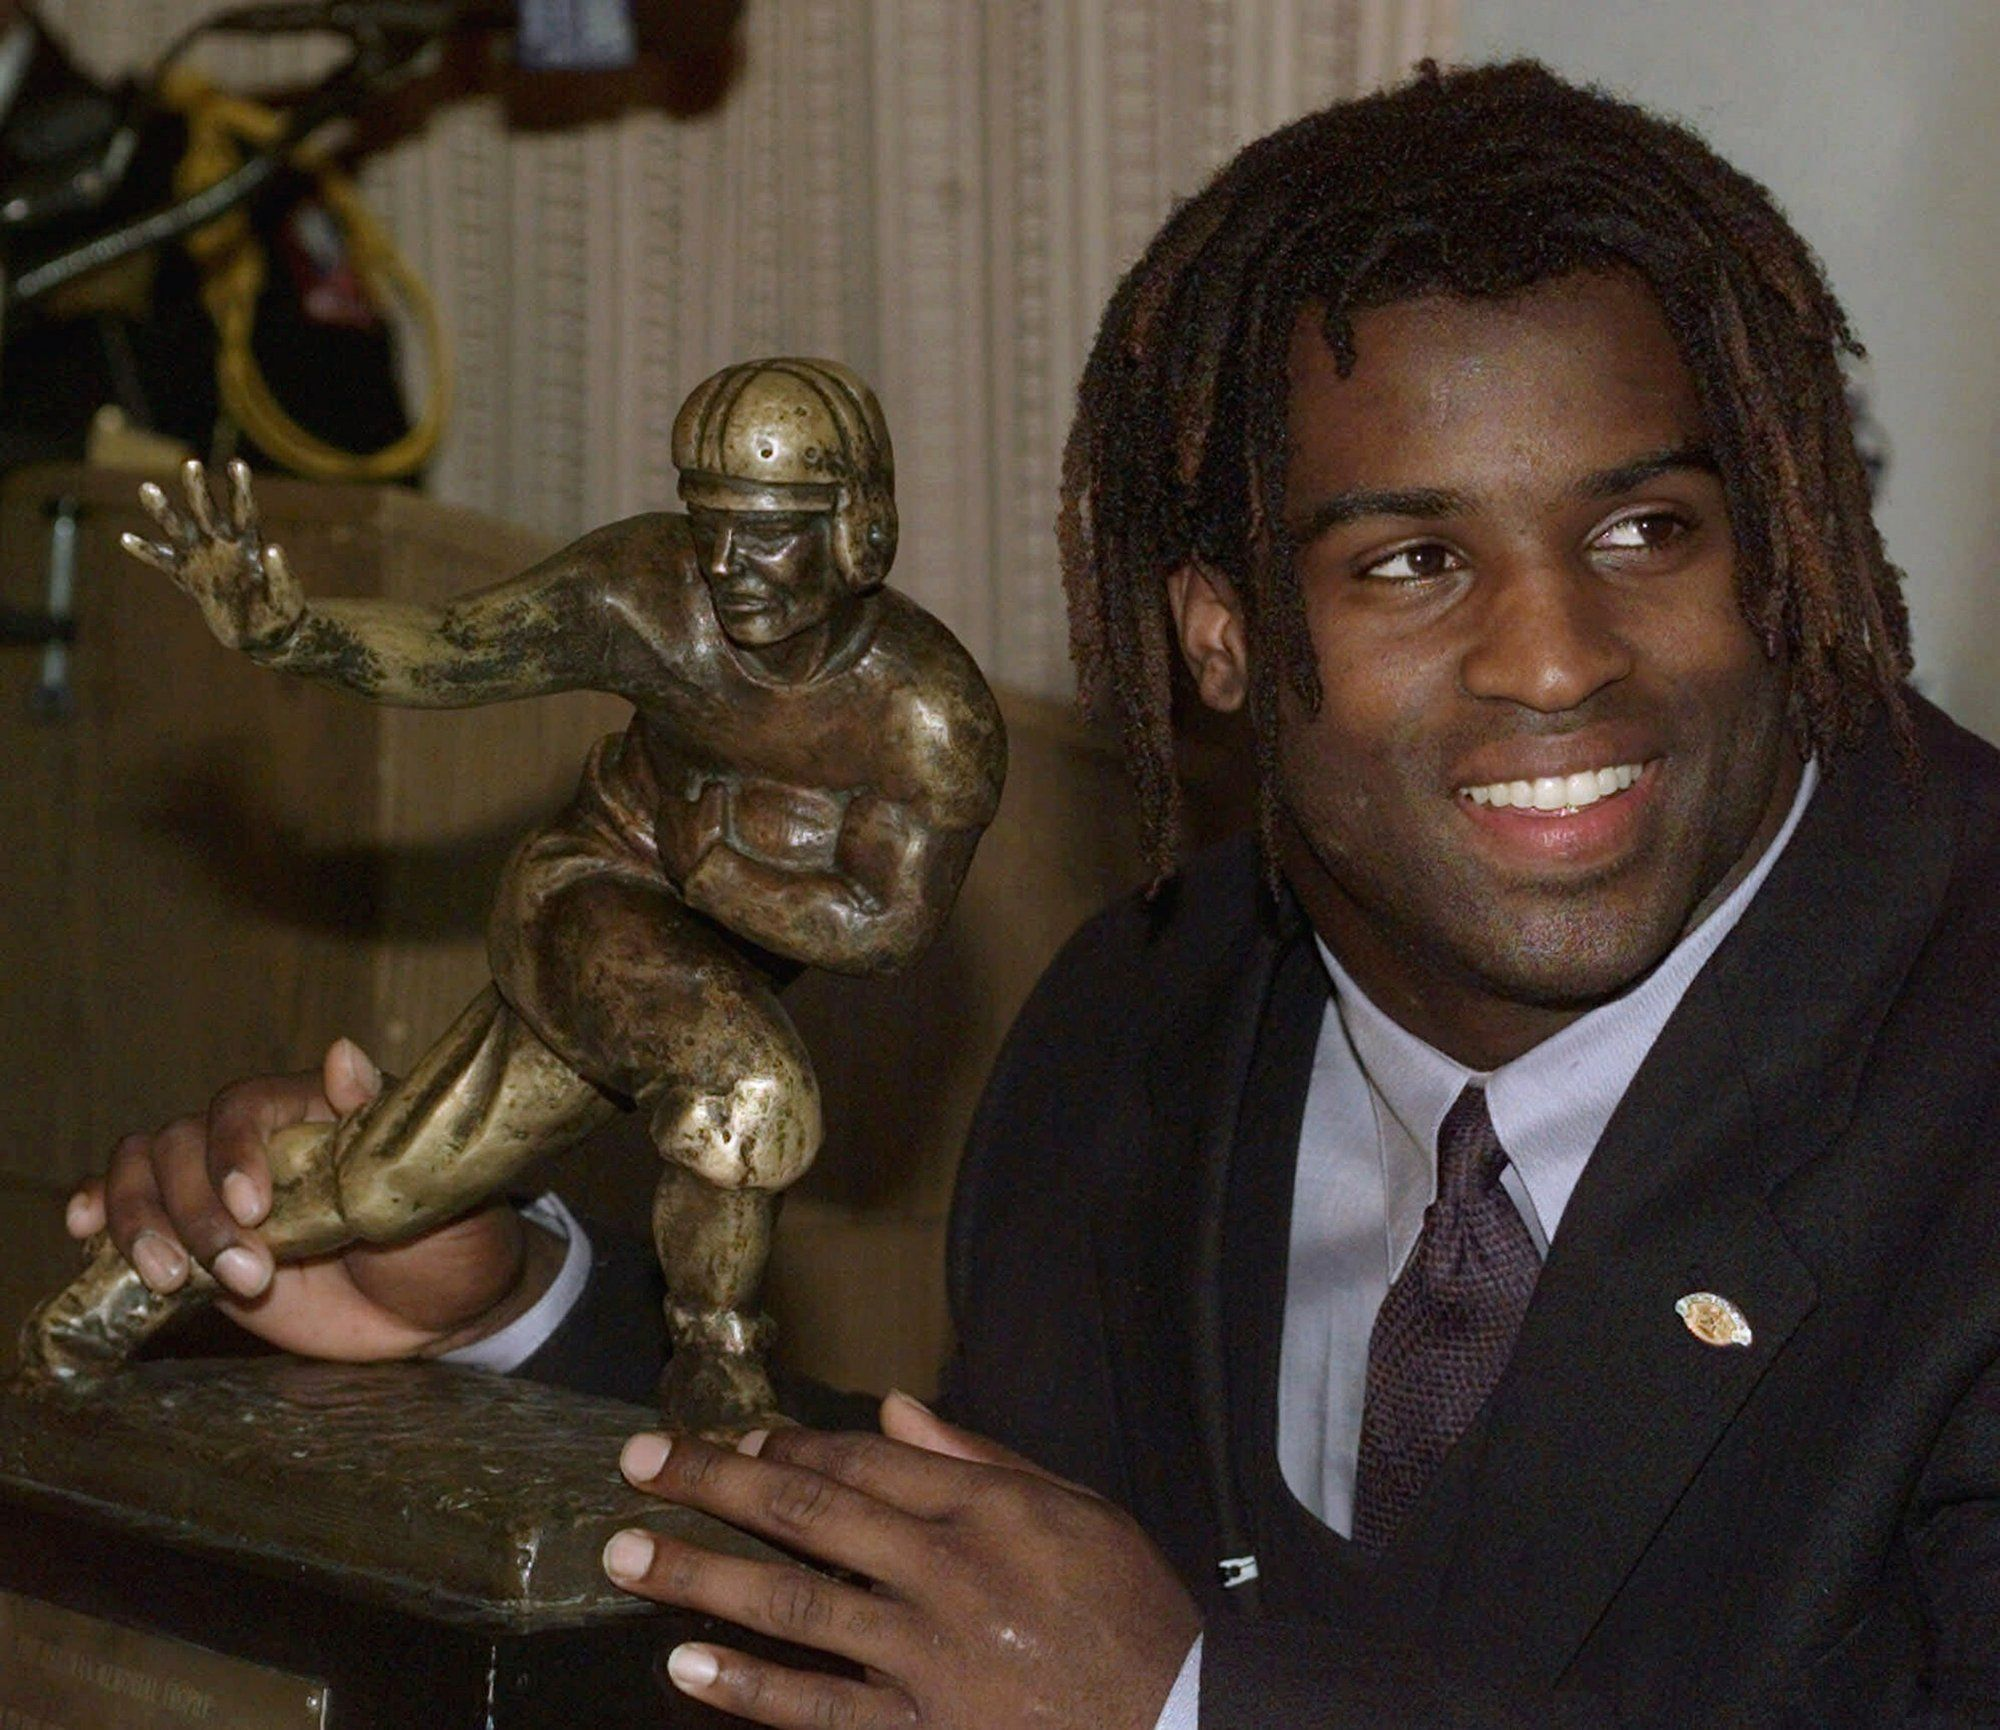 A new biopic will examine the life of 1998 Heisman Trophy winner Ricky Williams.